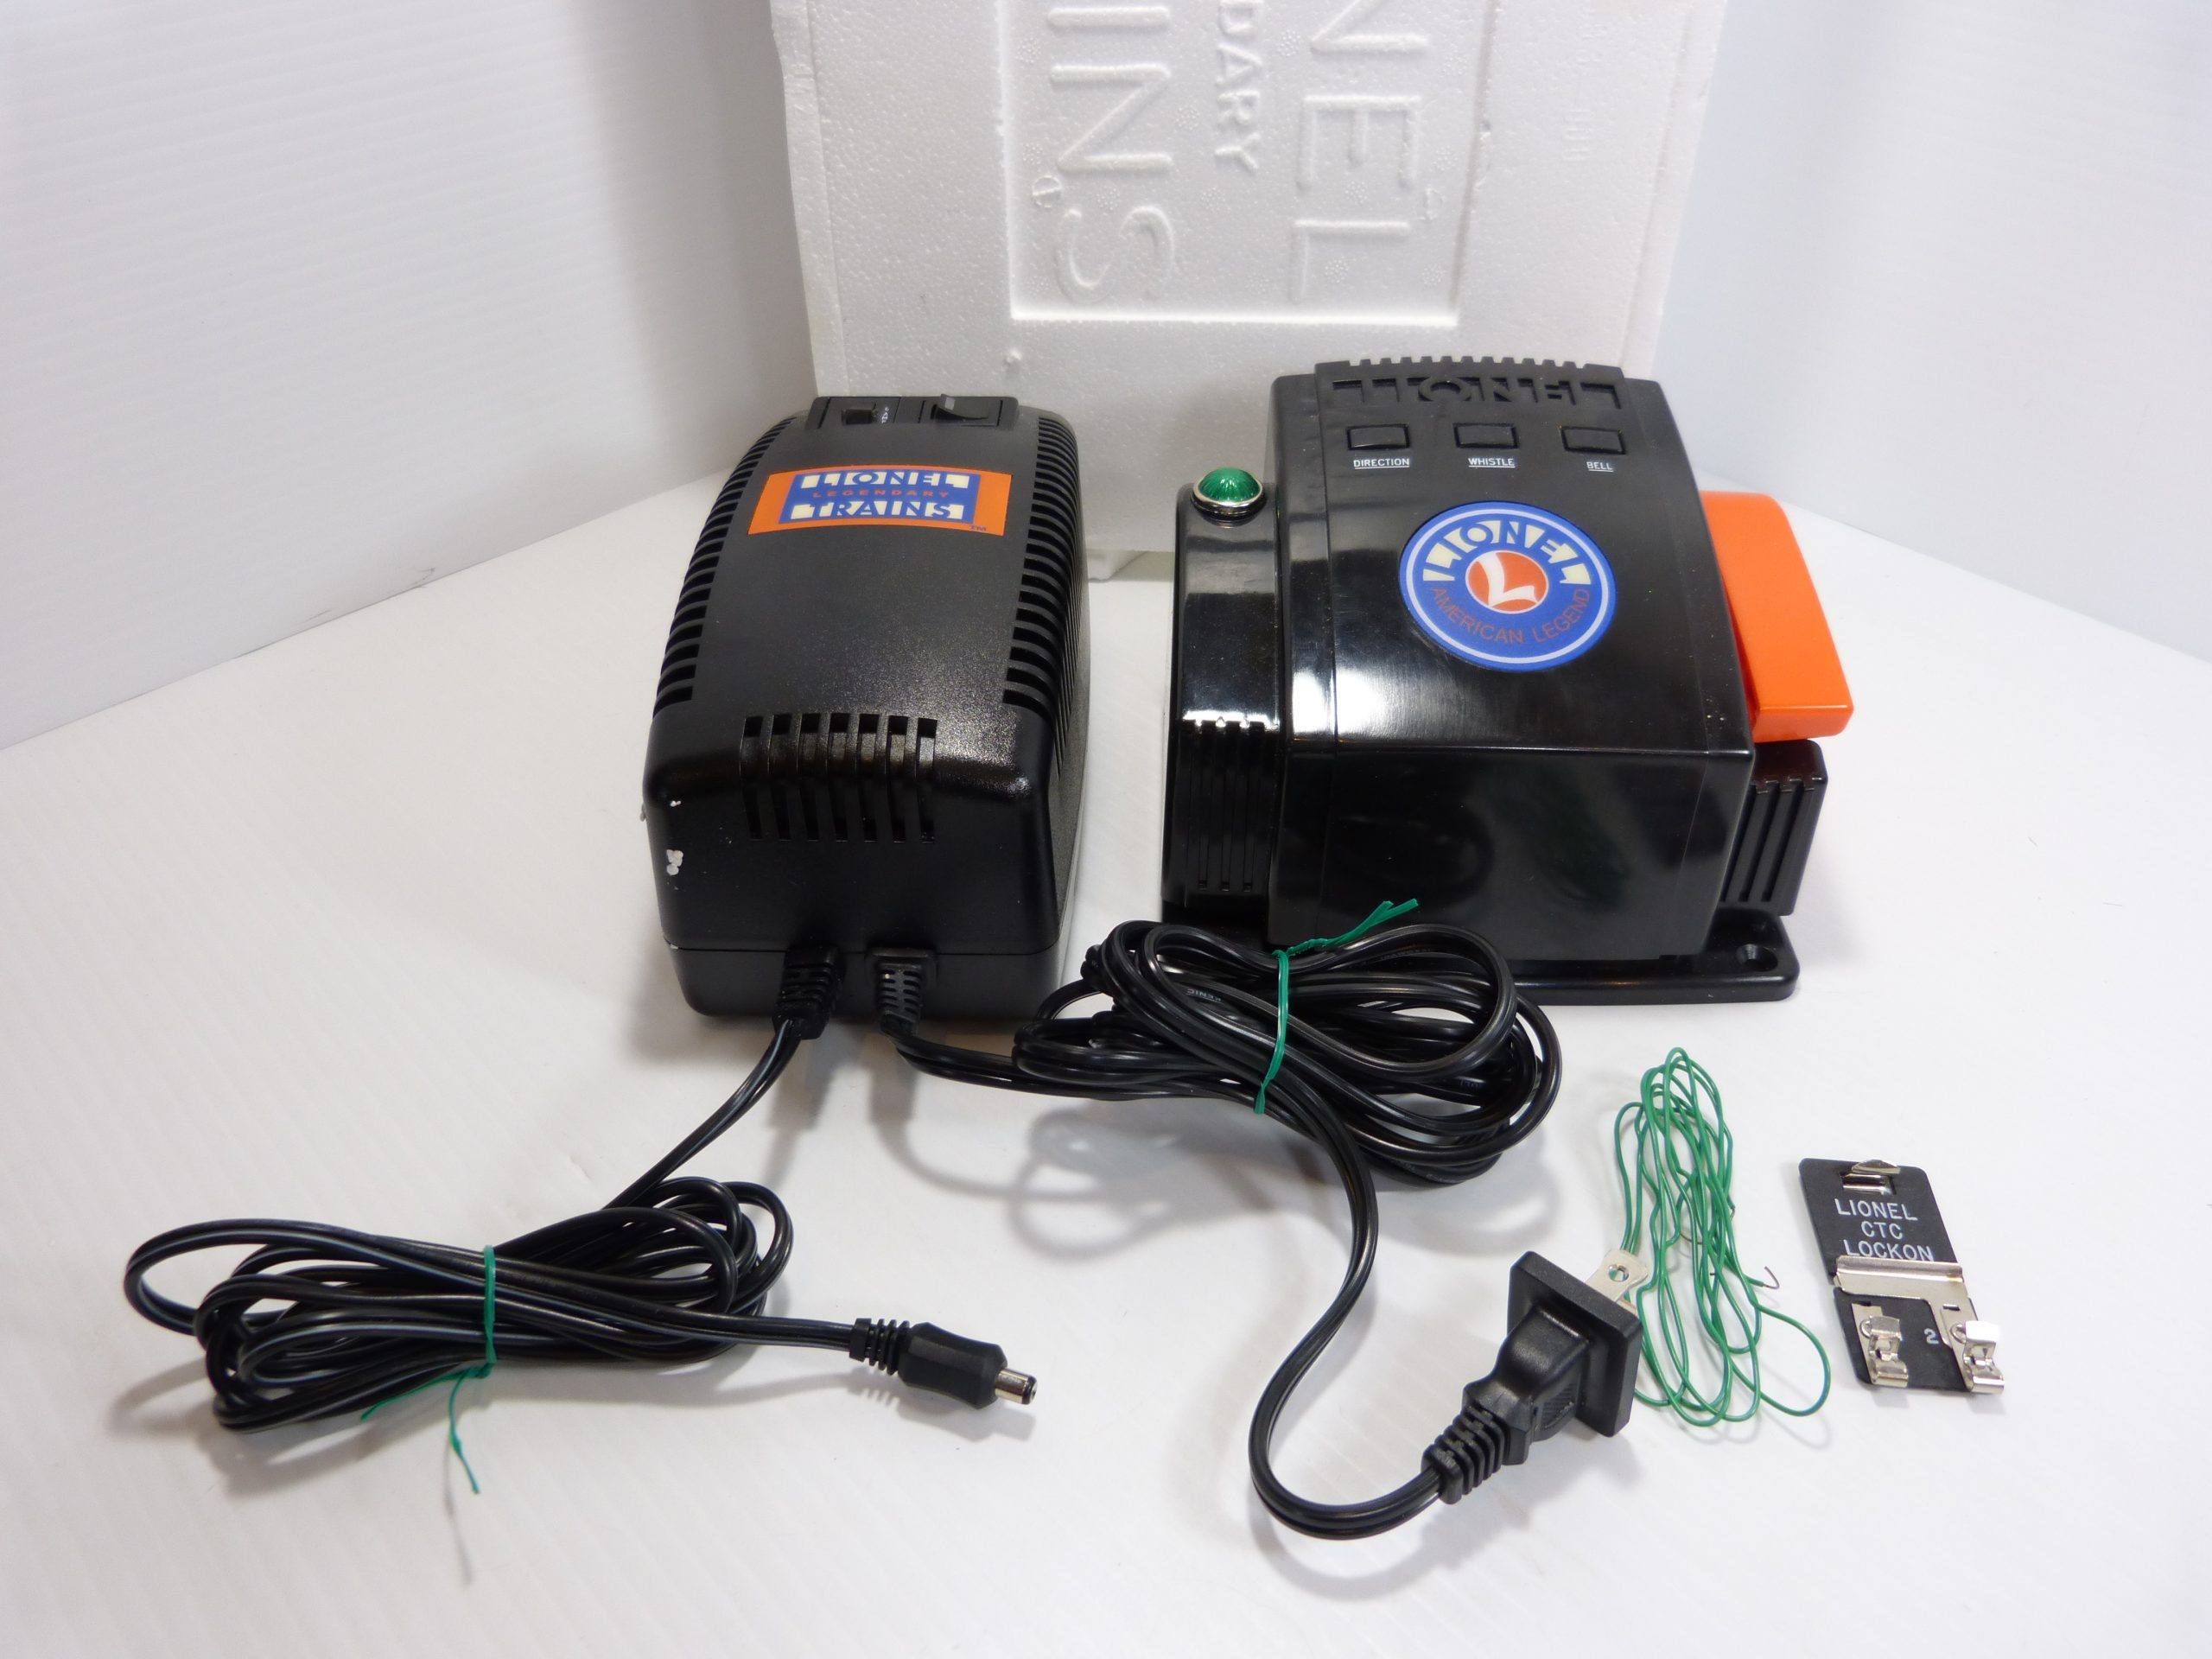 Lionell Powerhouse 80 Power Supply Mint TESTED